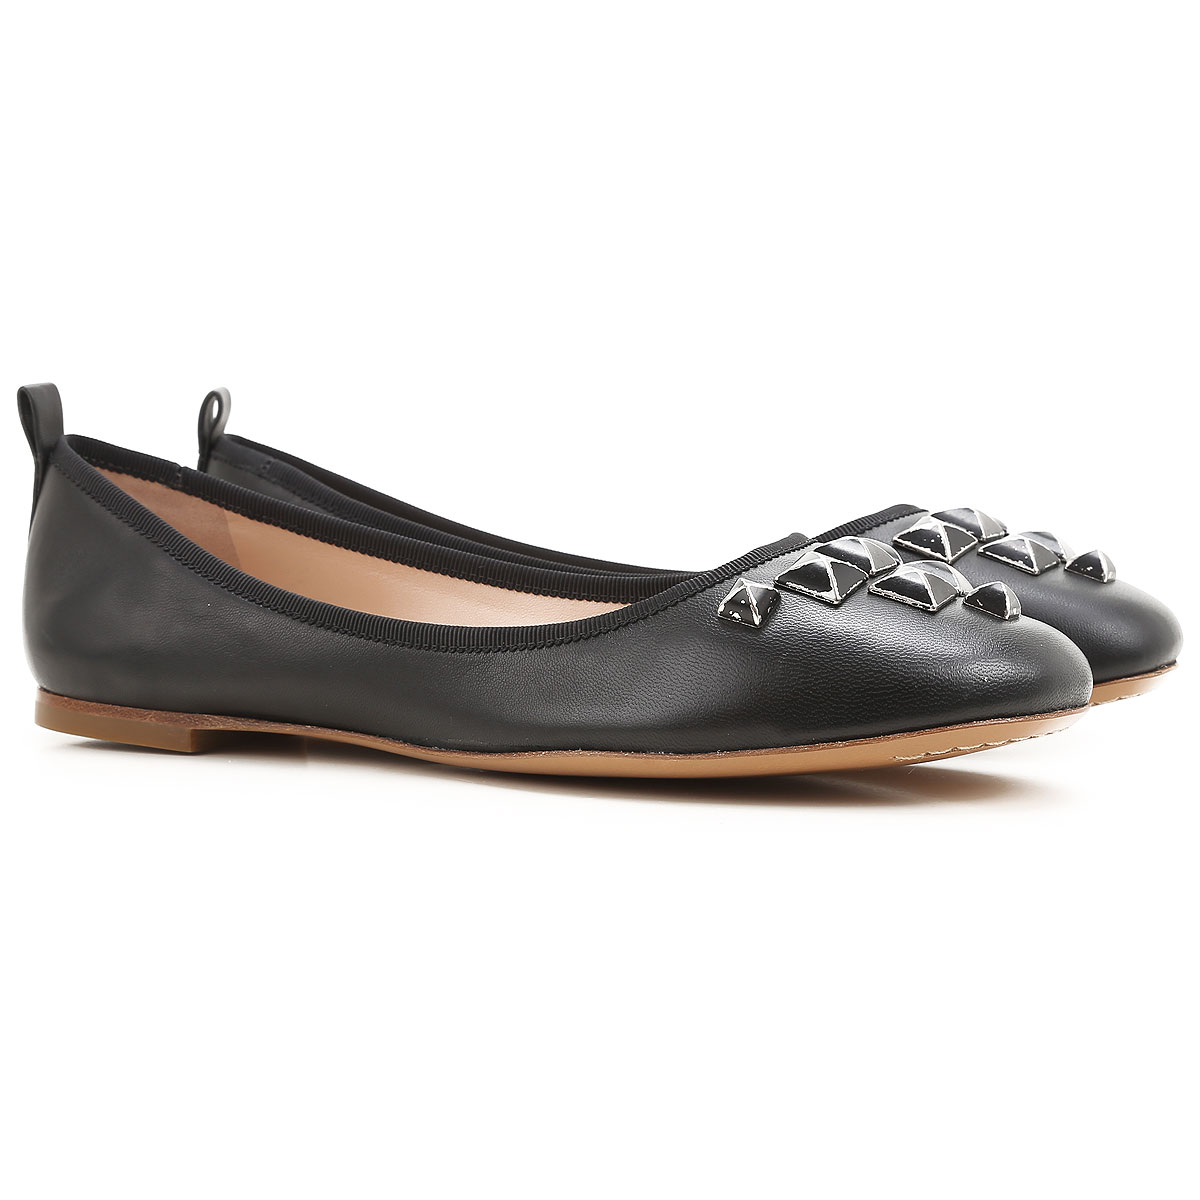 Marc Jacobs Ballet Flats Ballerina Shoes for Women On Sale in Outlet, Black, Leather, 2019, 11 9